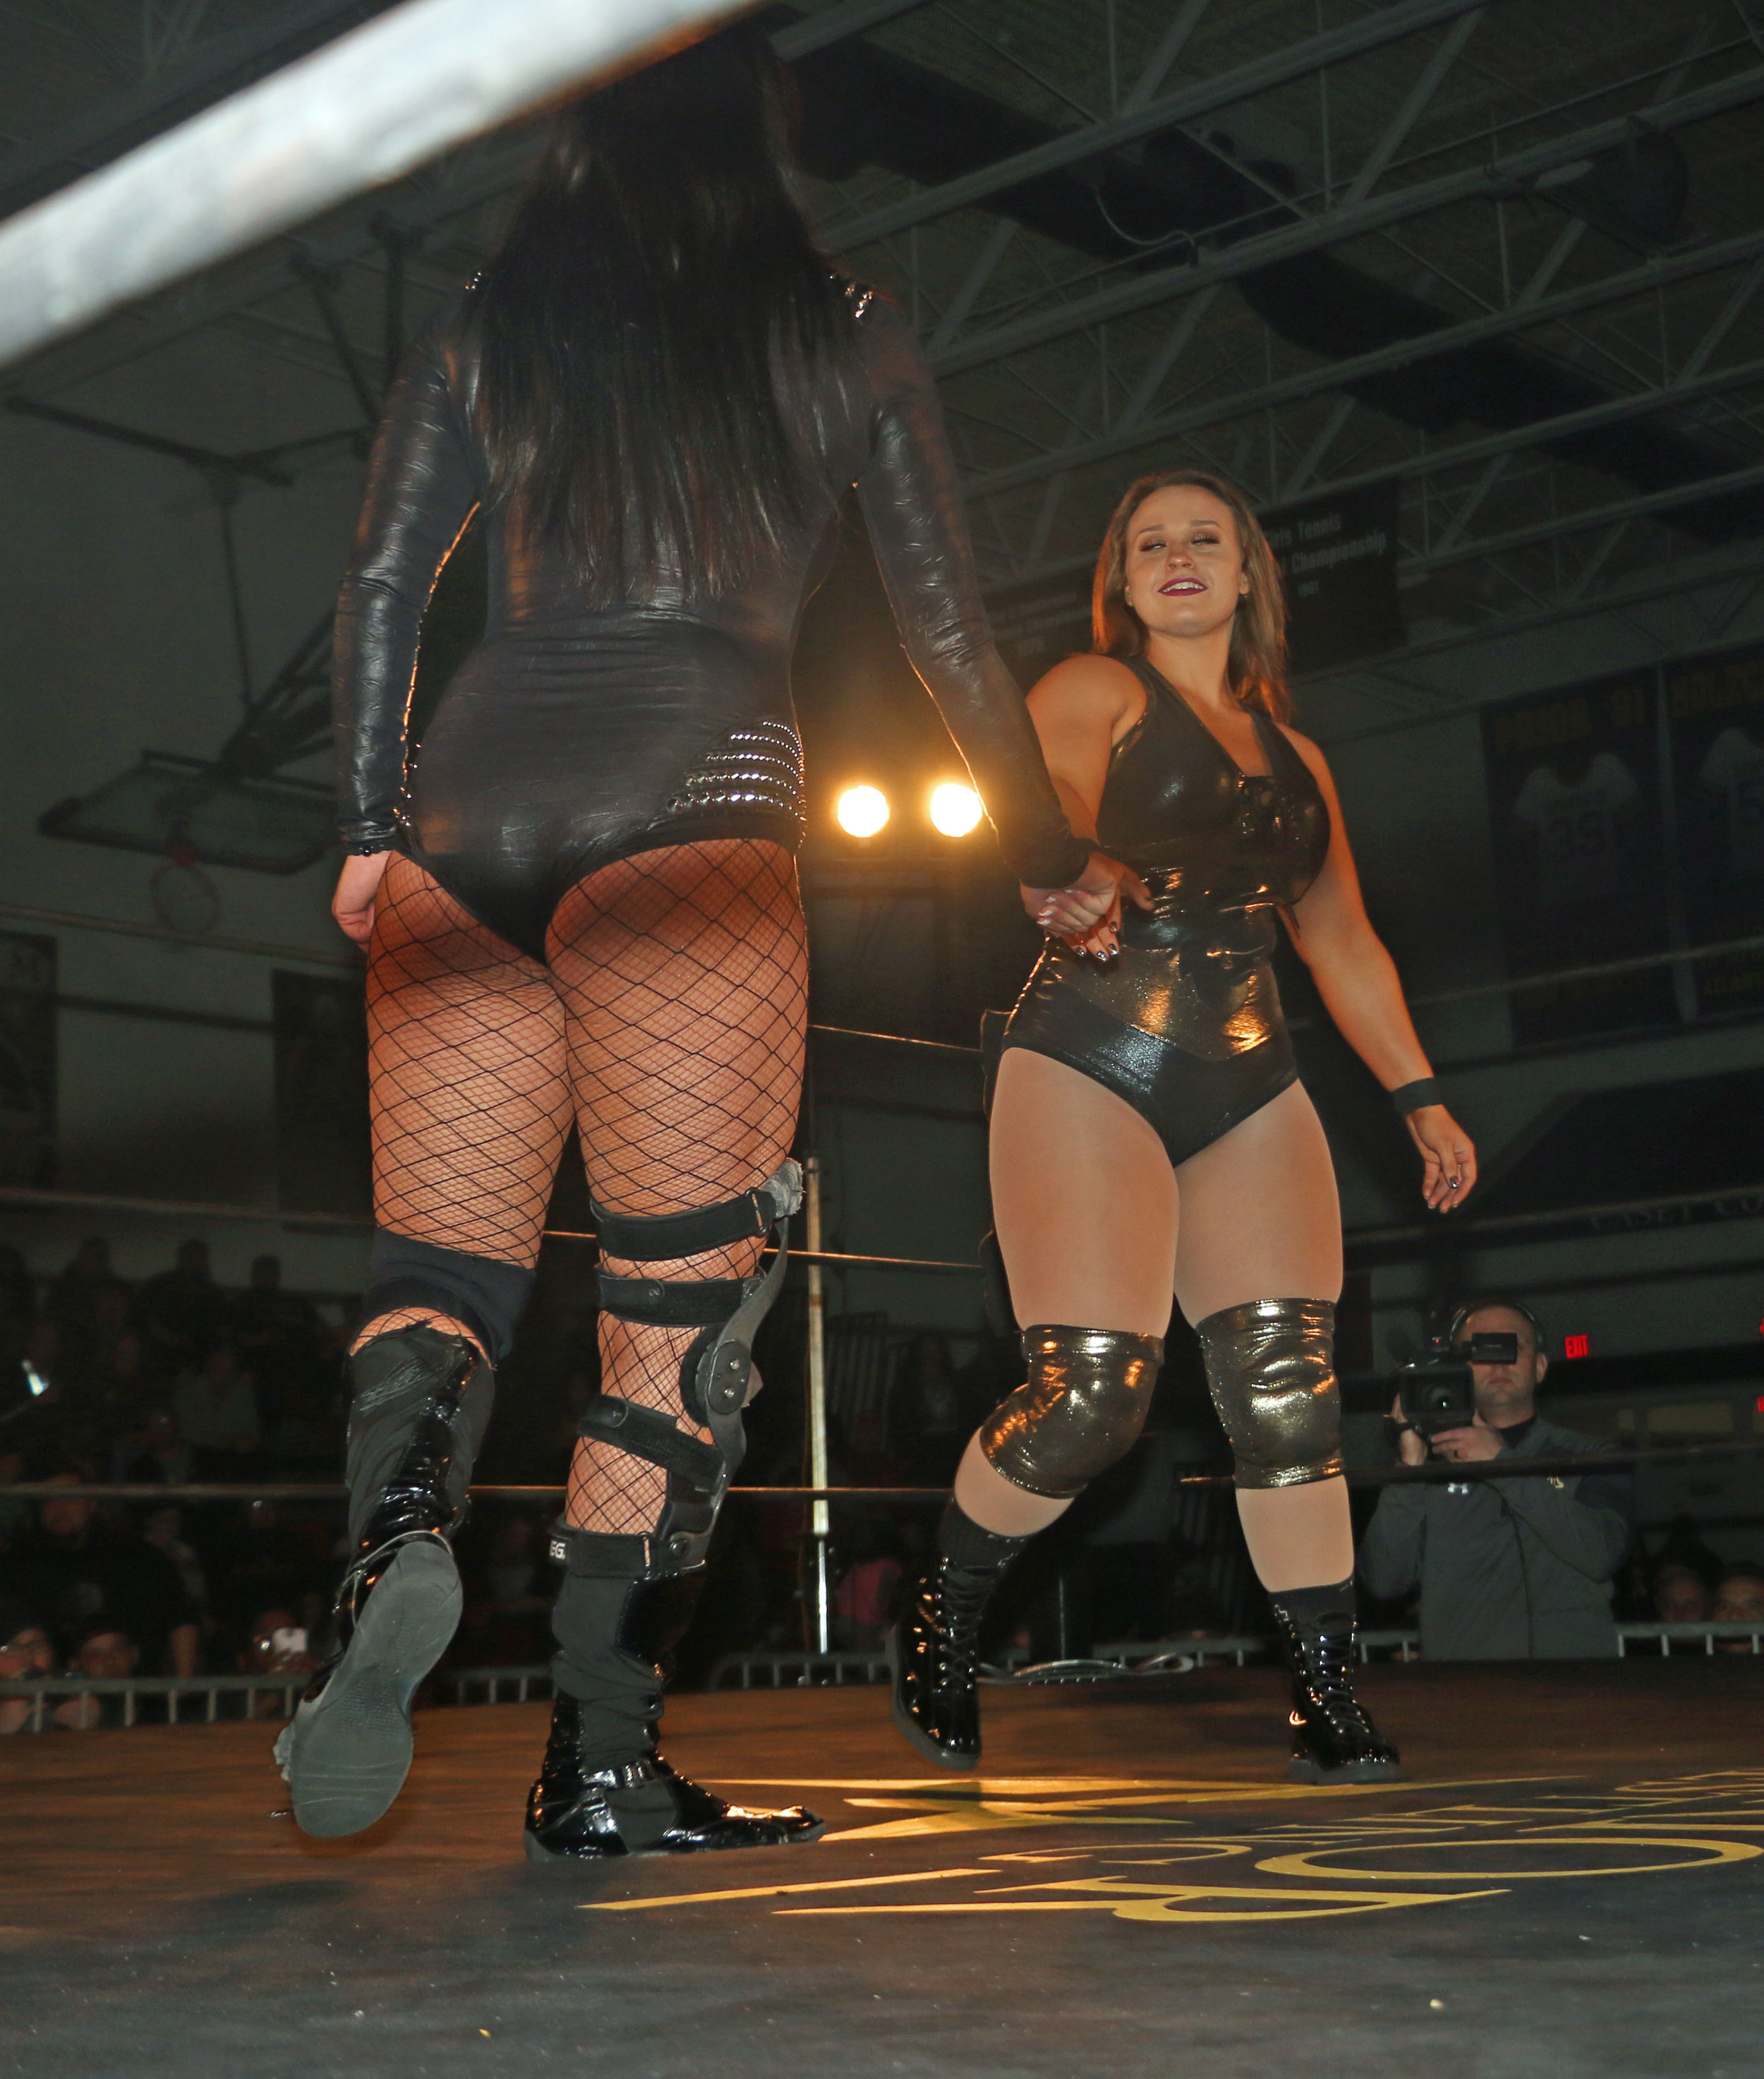 Jordynne Grace, right, shakes the hand of Lisa Marie Varon before the match.